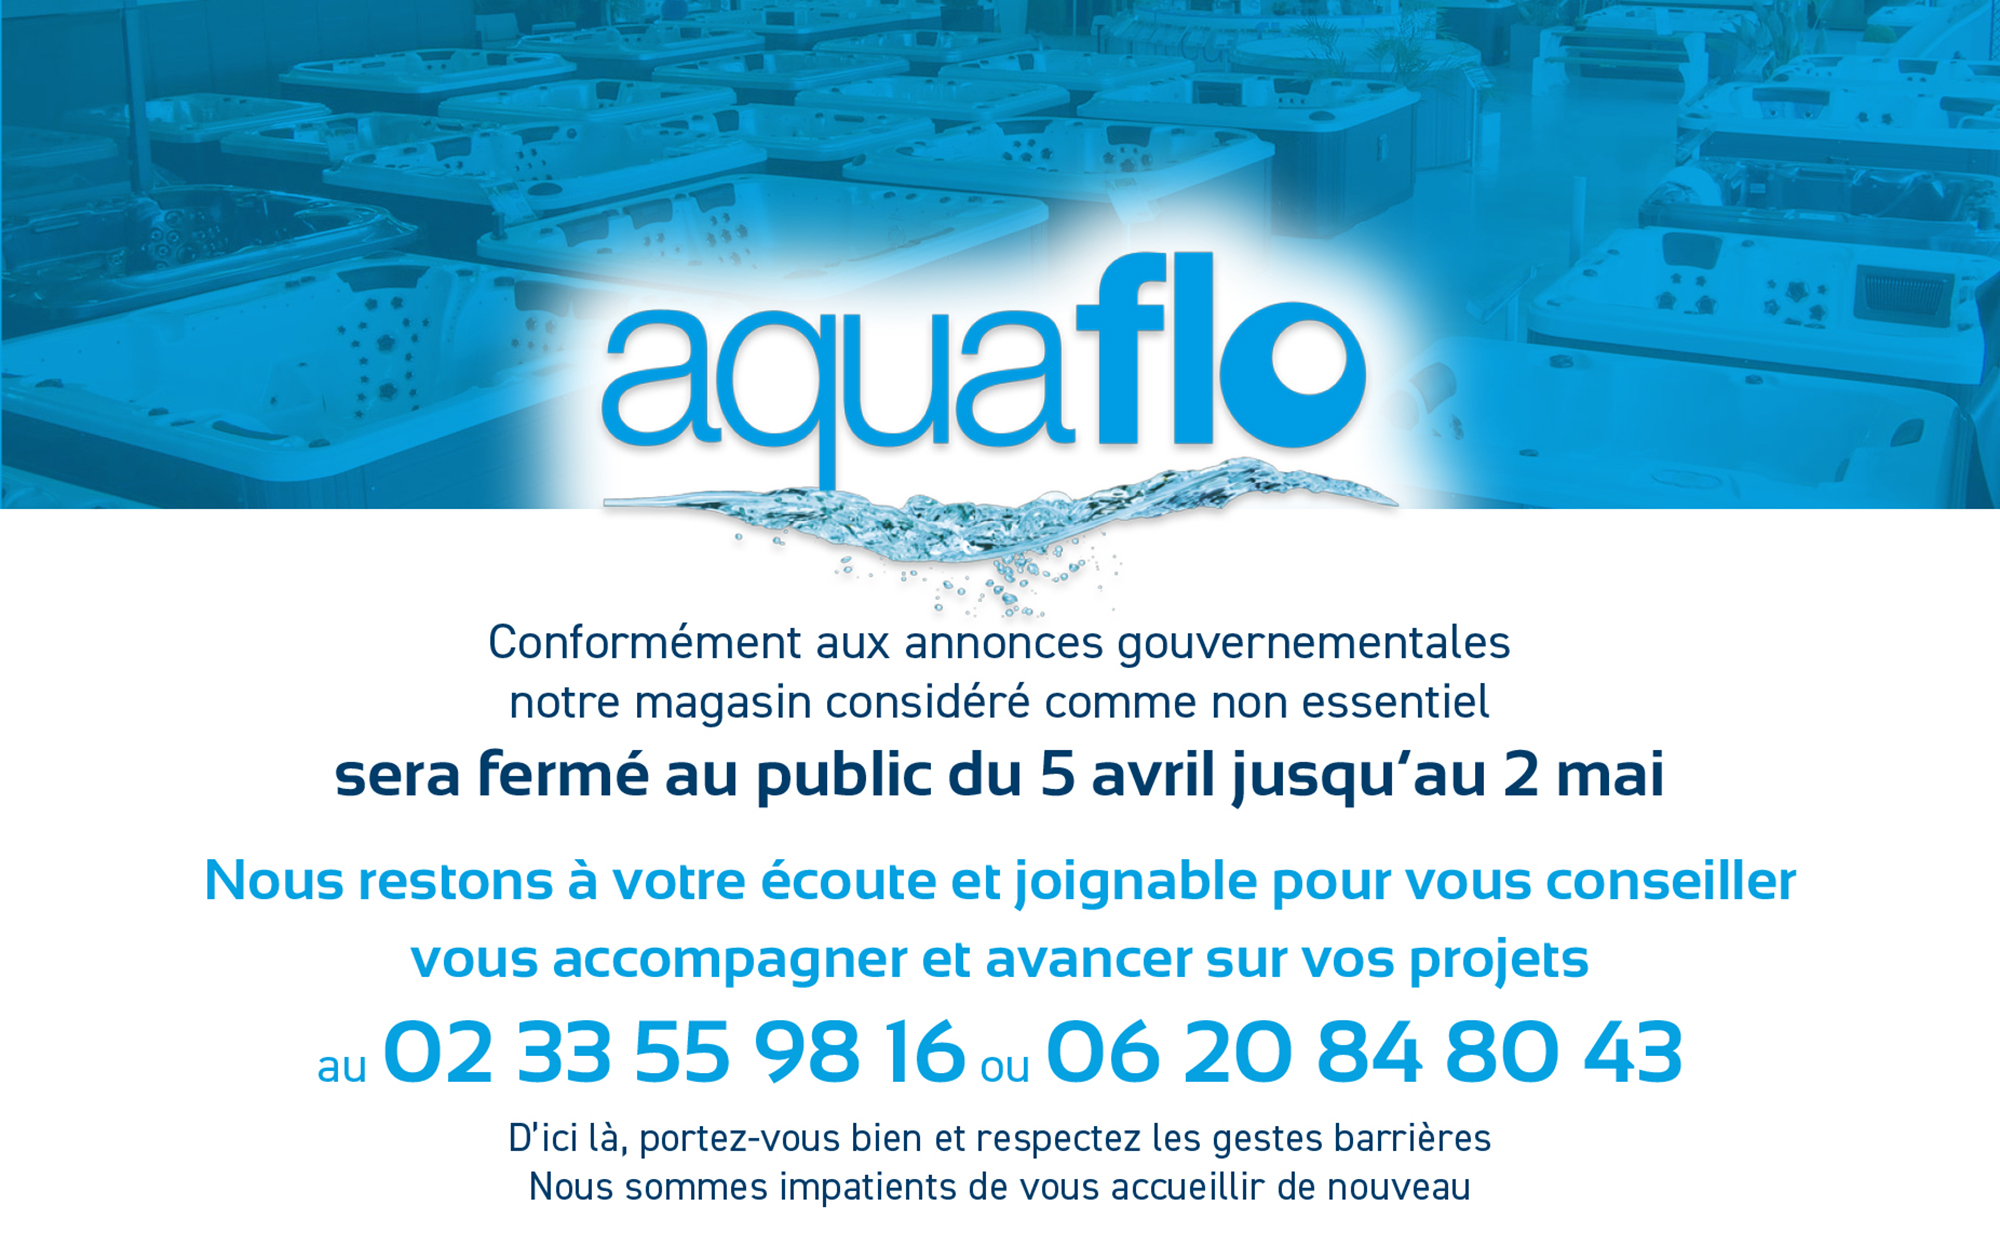 Aquaflo_Slide-fermeture-Covid_04-2021